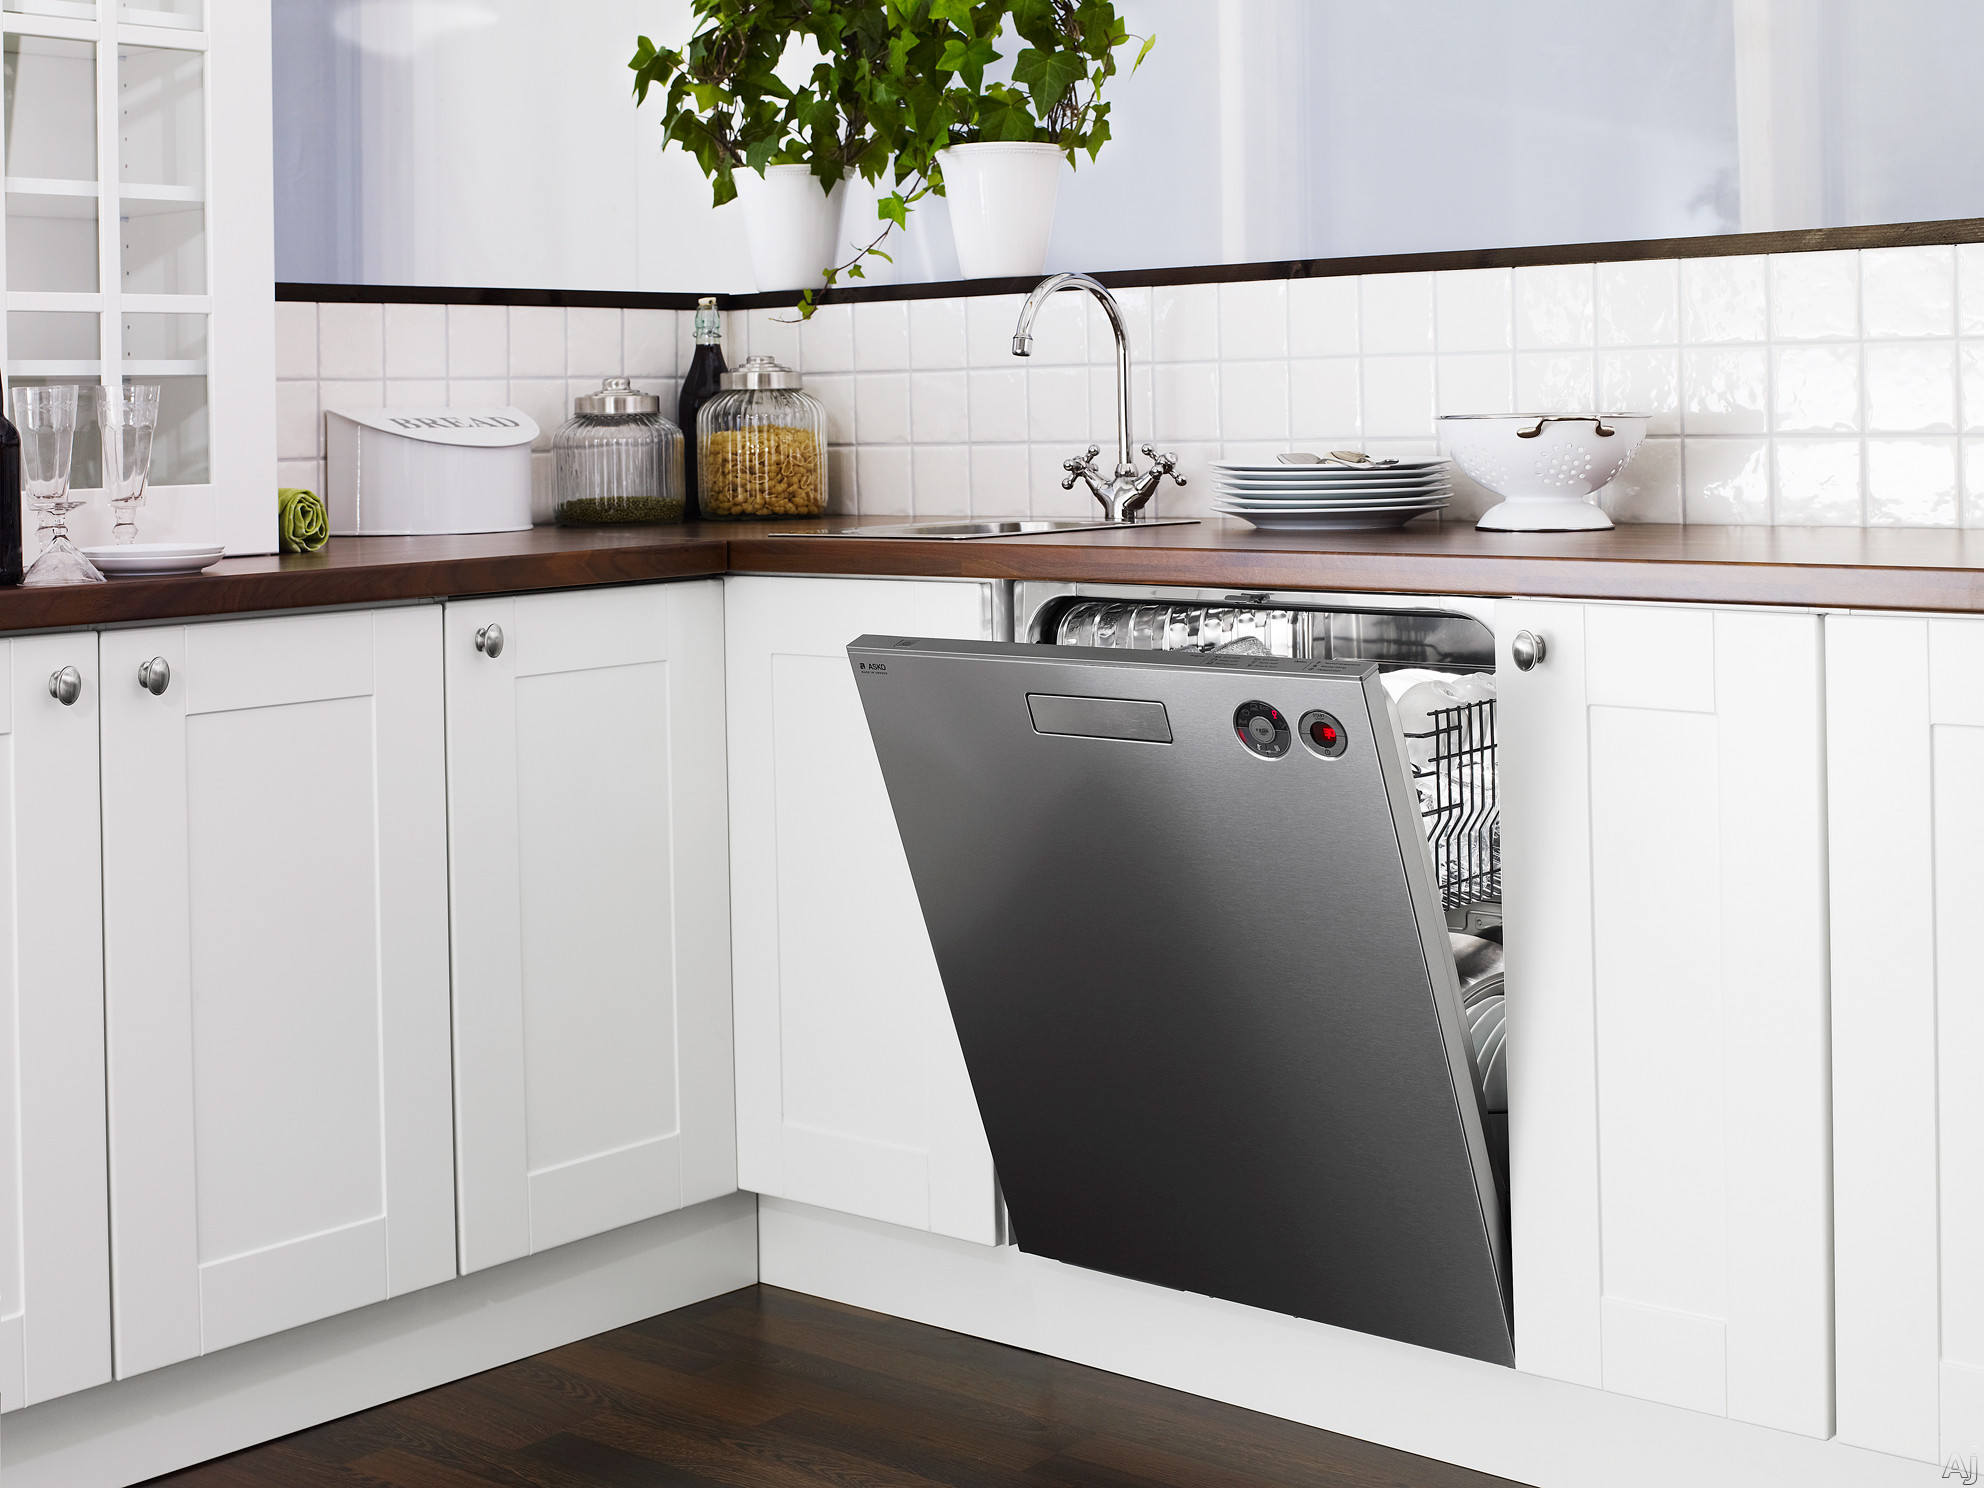 5 Uses For Ikea Panels Or Fronts For Integrated Appliances